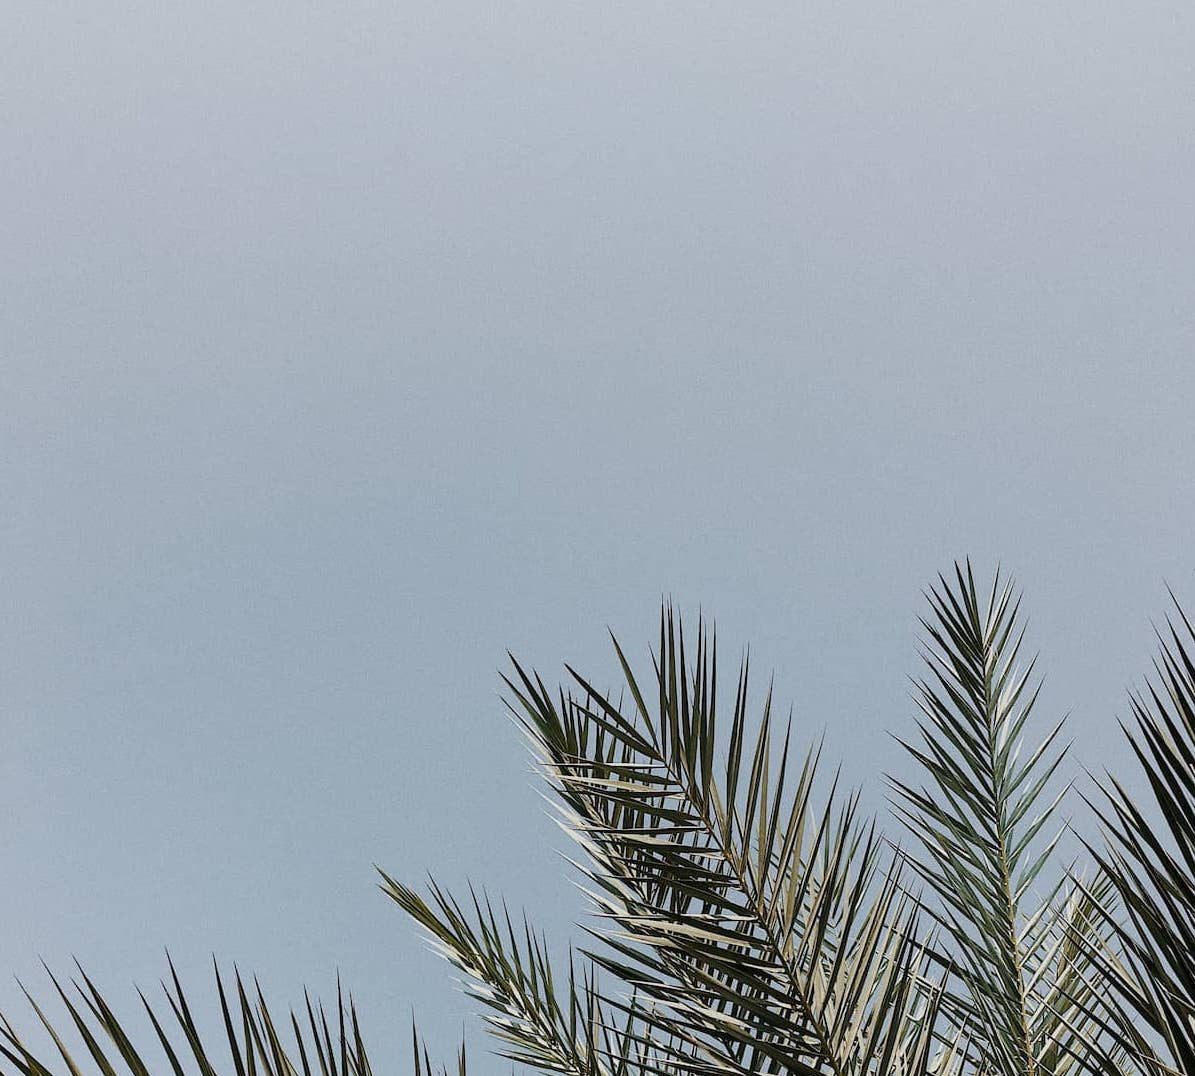 image of palm leaves and blue skies